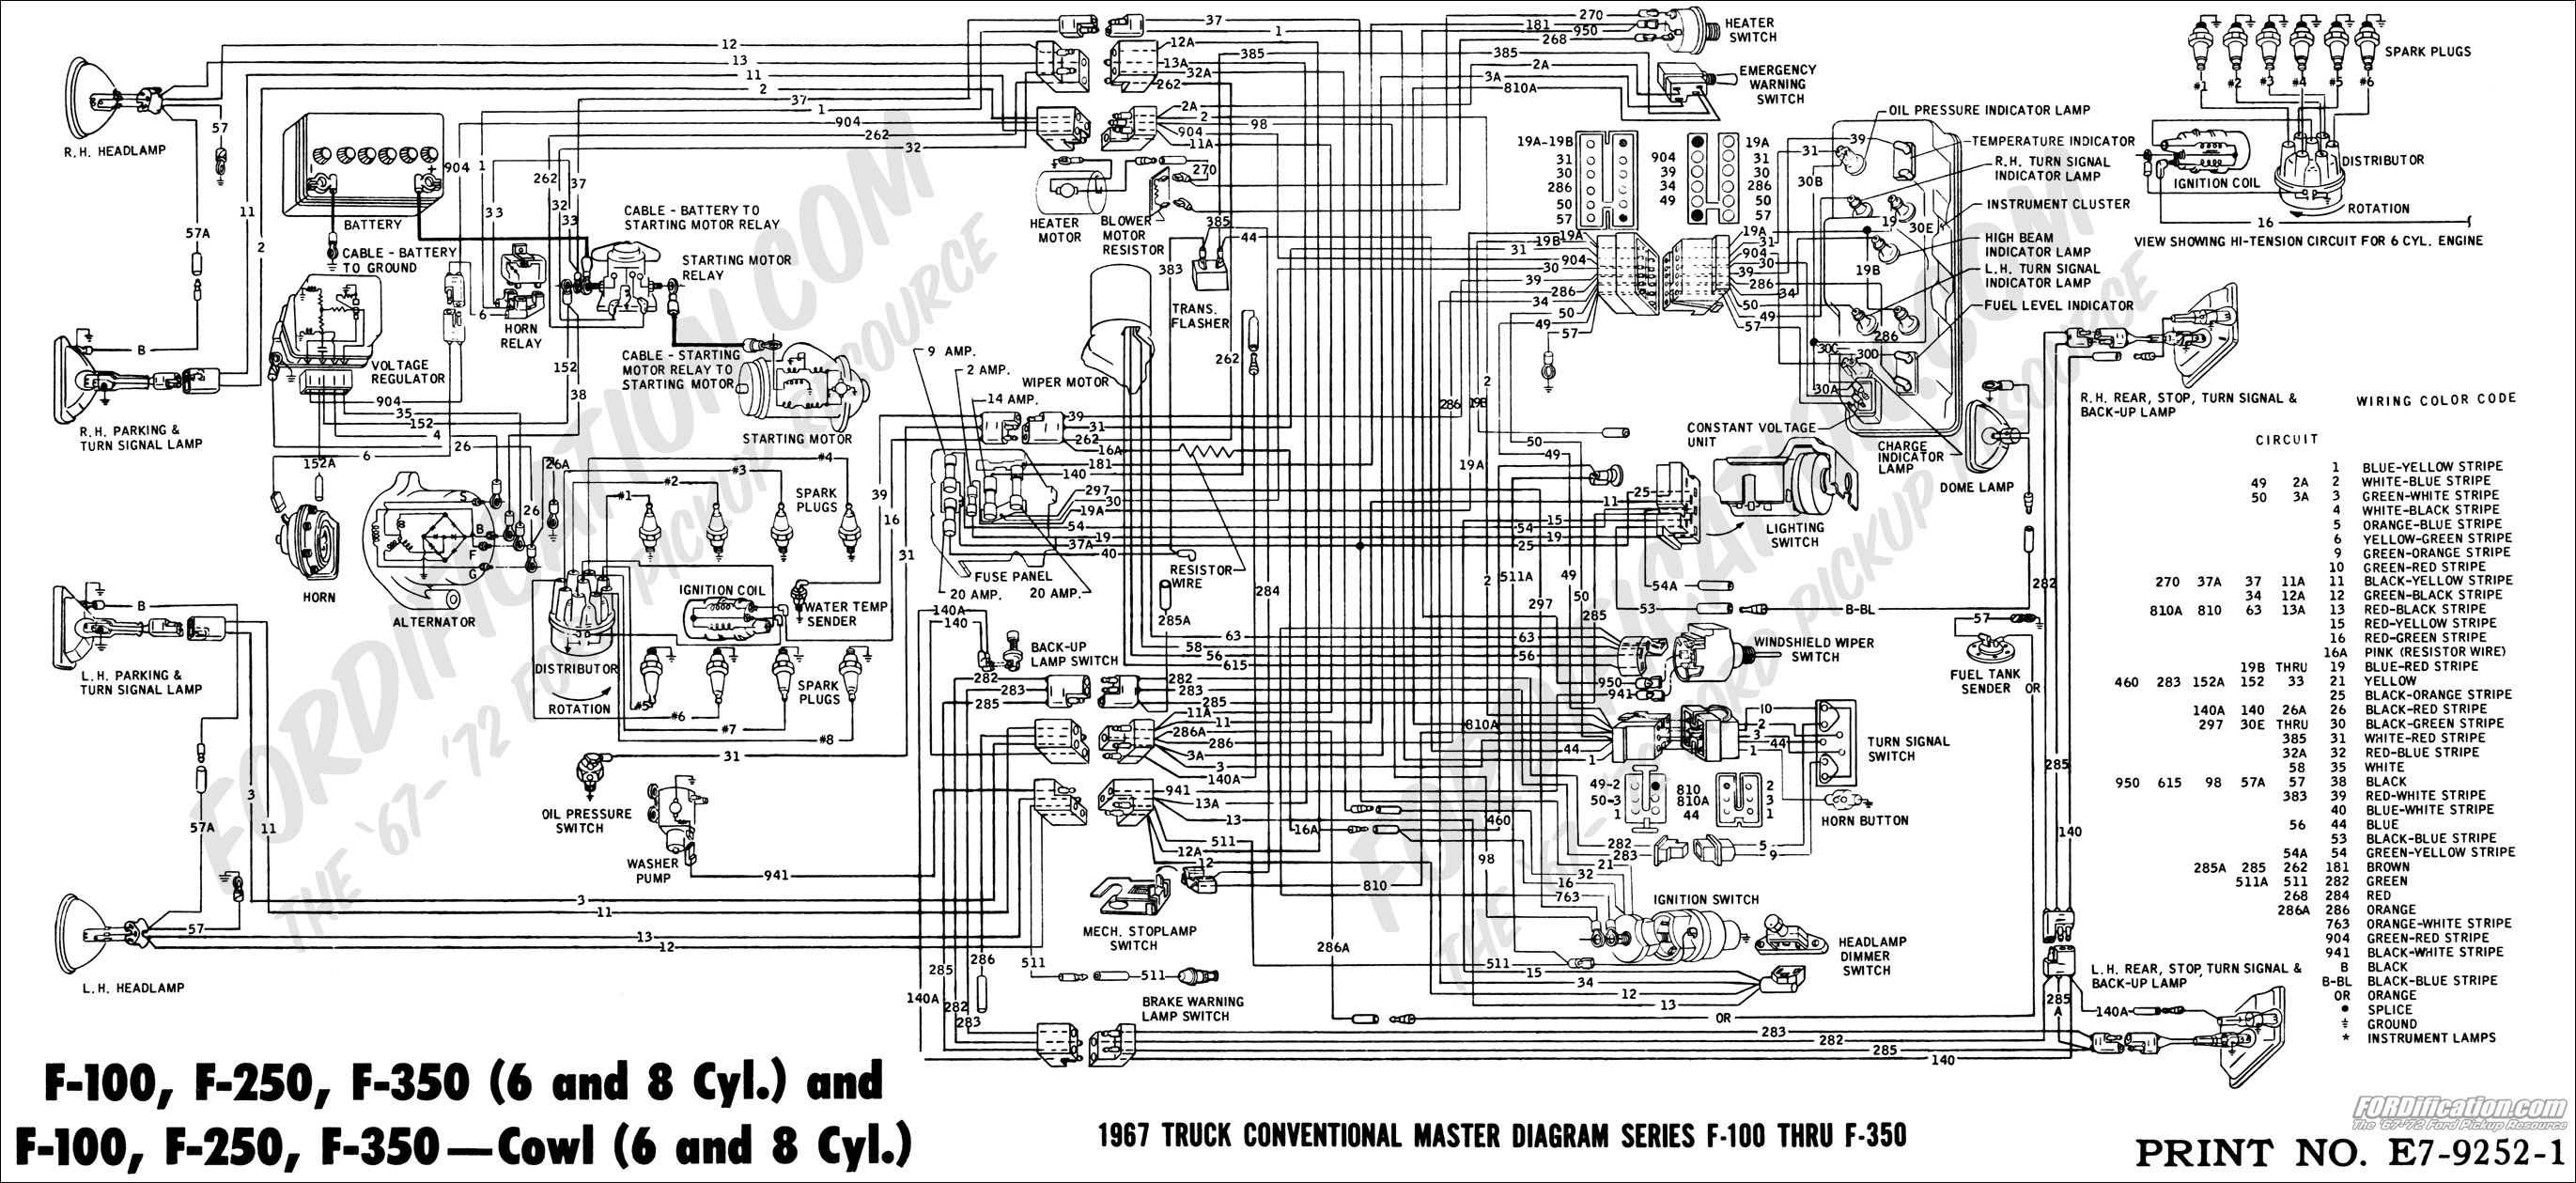 1990 F 250 Wiring Diagram Free For You Ford Ac 2001 F250 Origin Rh 10 18 4 Darklifezine De